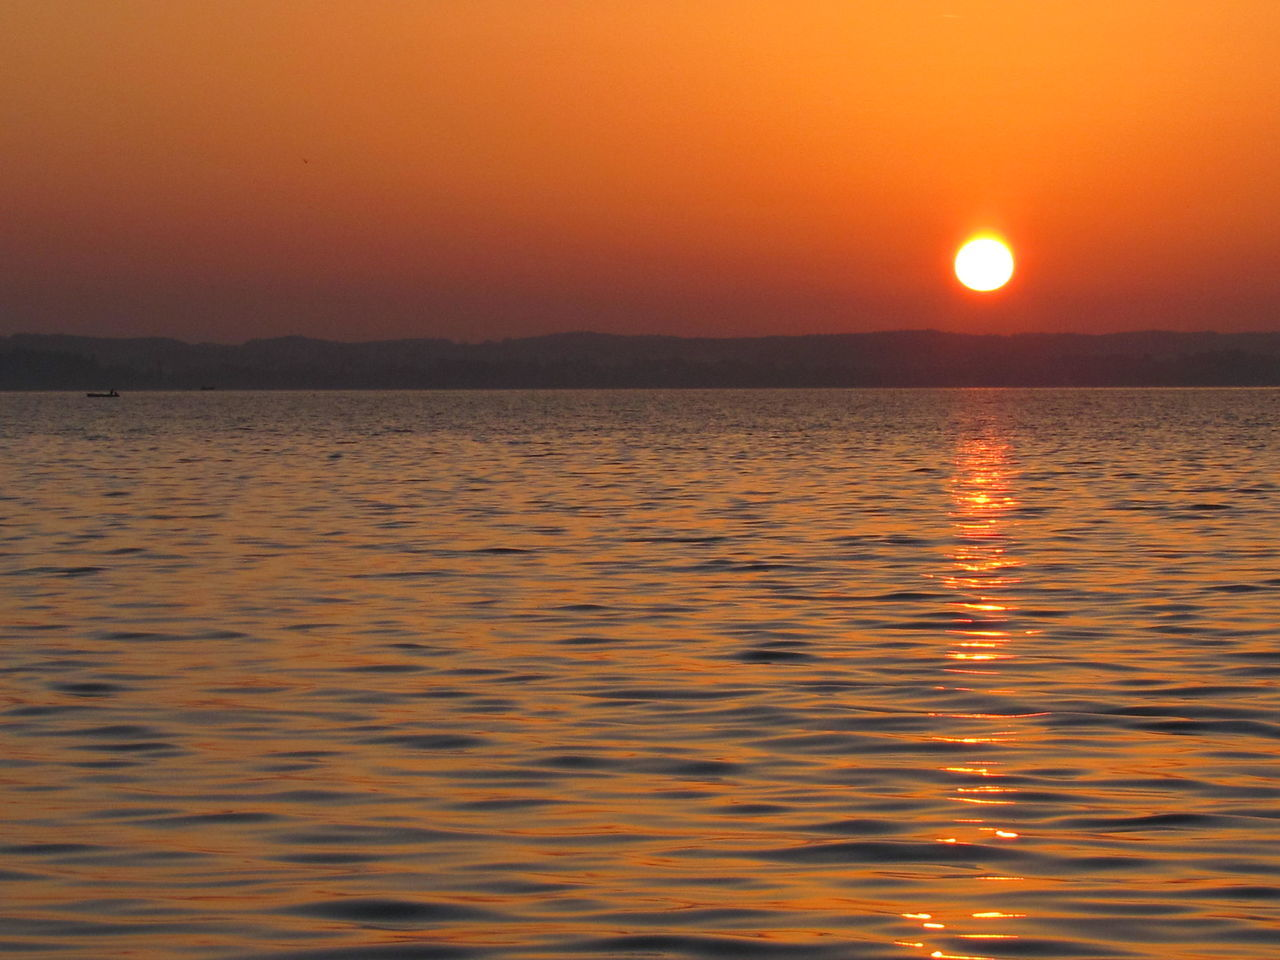 sunset, sun, nature, beauty in nature, scenics, water, tranquility, orange color, sea, idyllic, tranquil scene, no people, outdoors, waterfront, sky, horizon, scenery